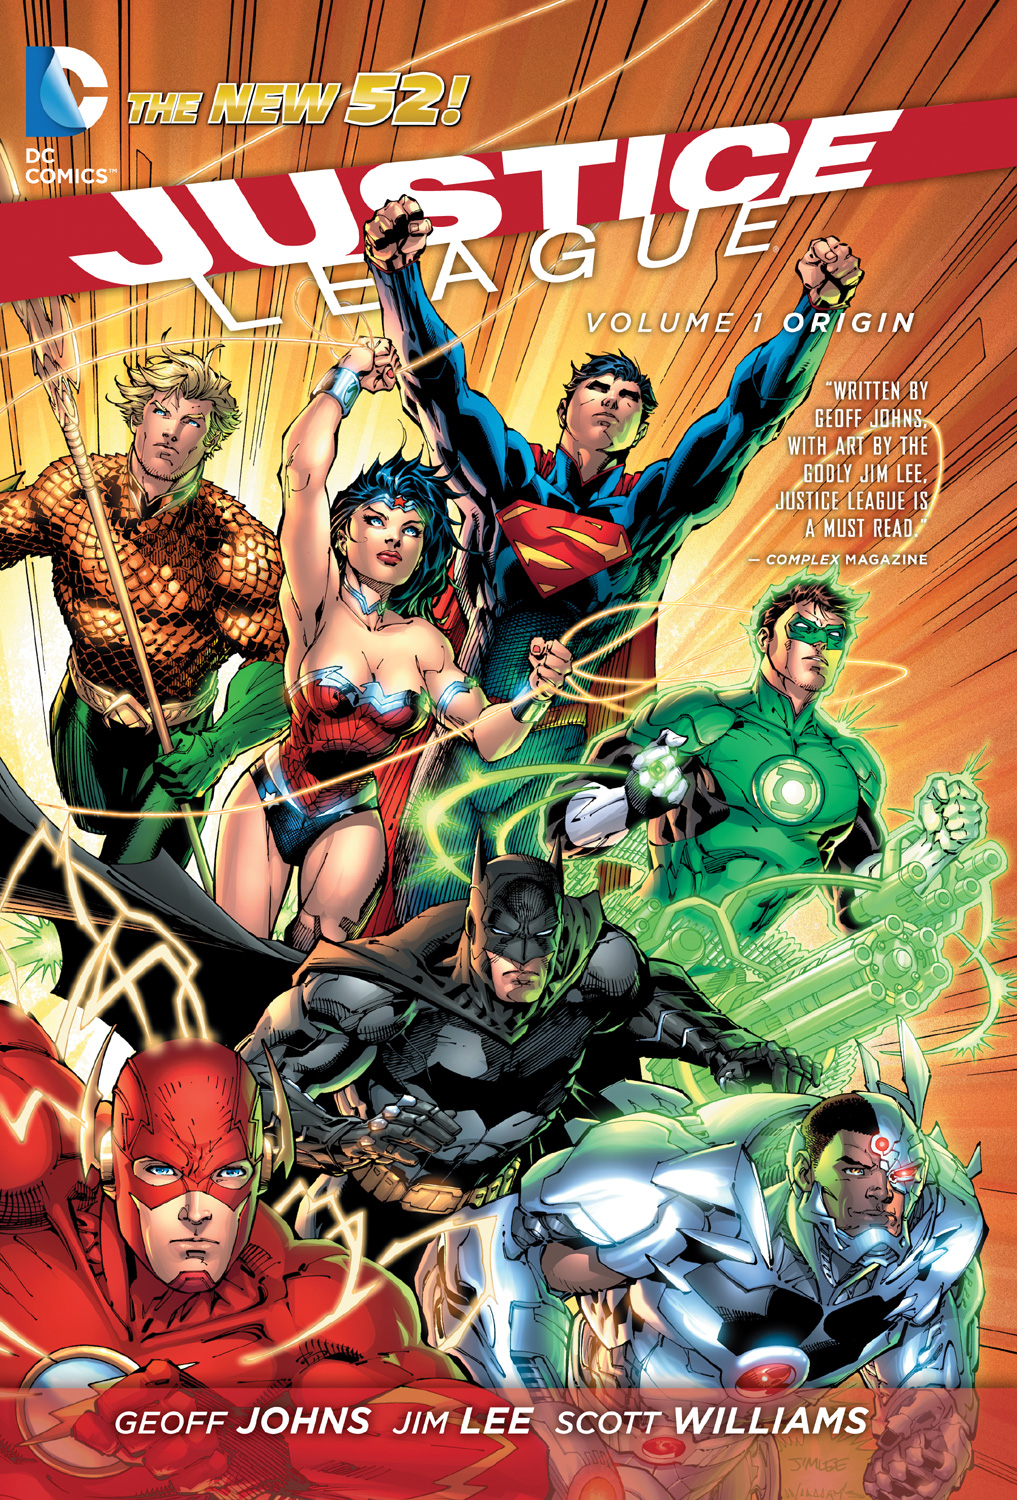 JUSTICE LEAGUE Vol. 1 Origin